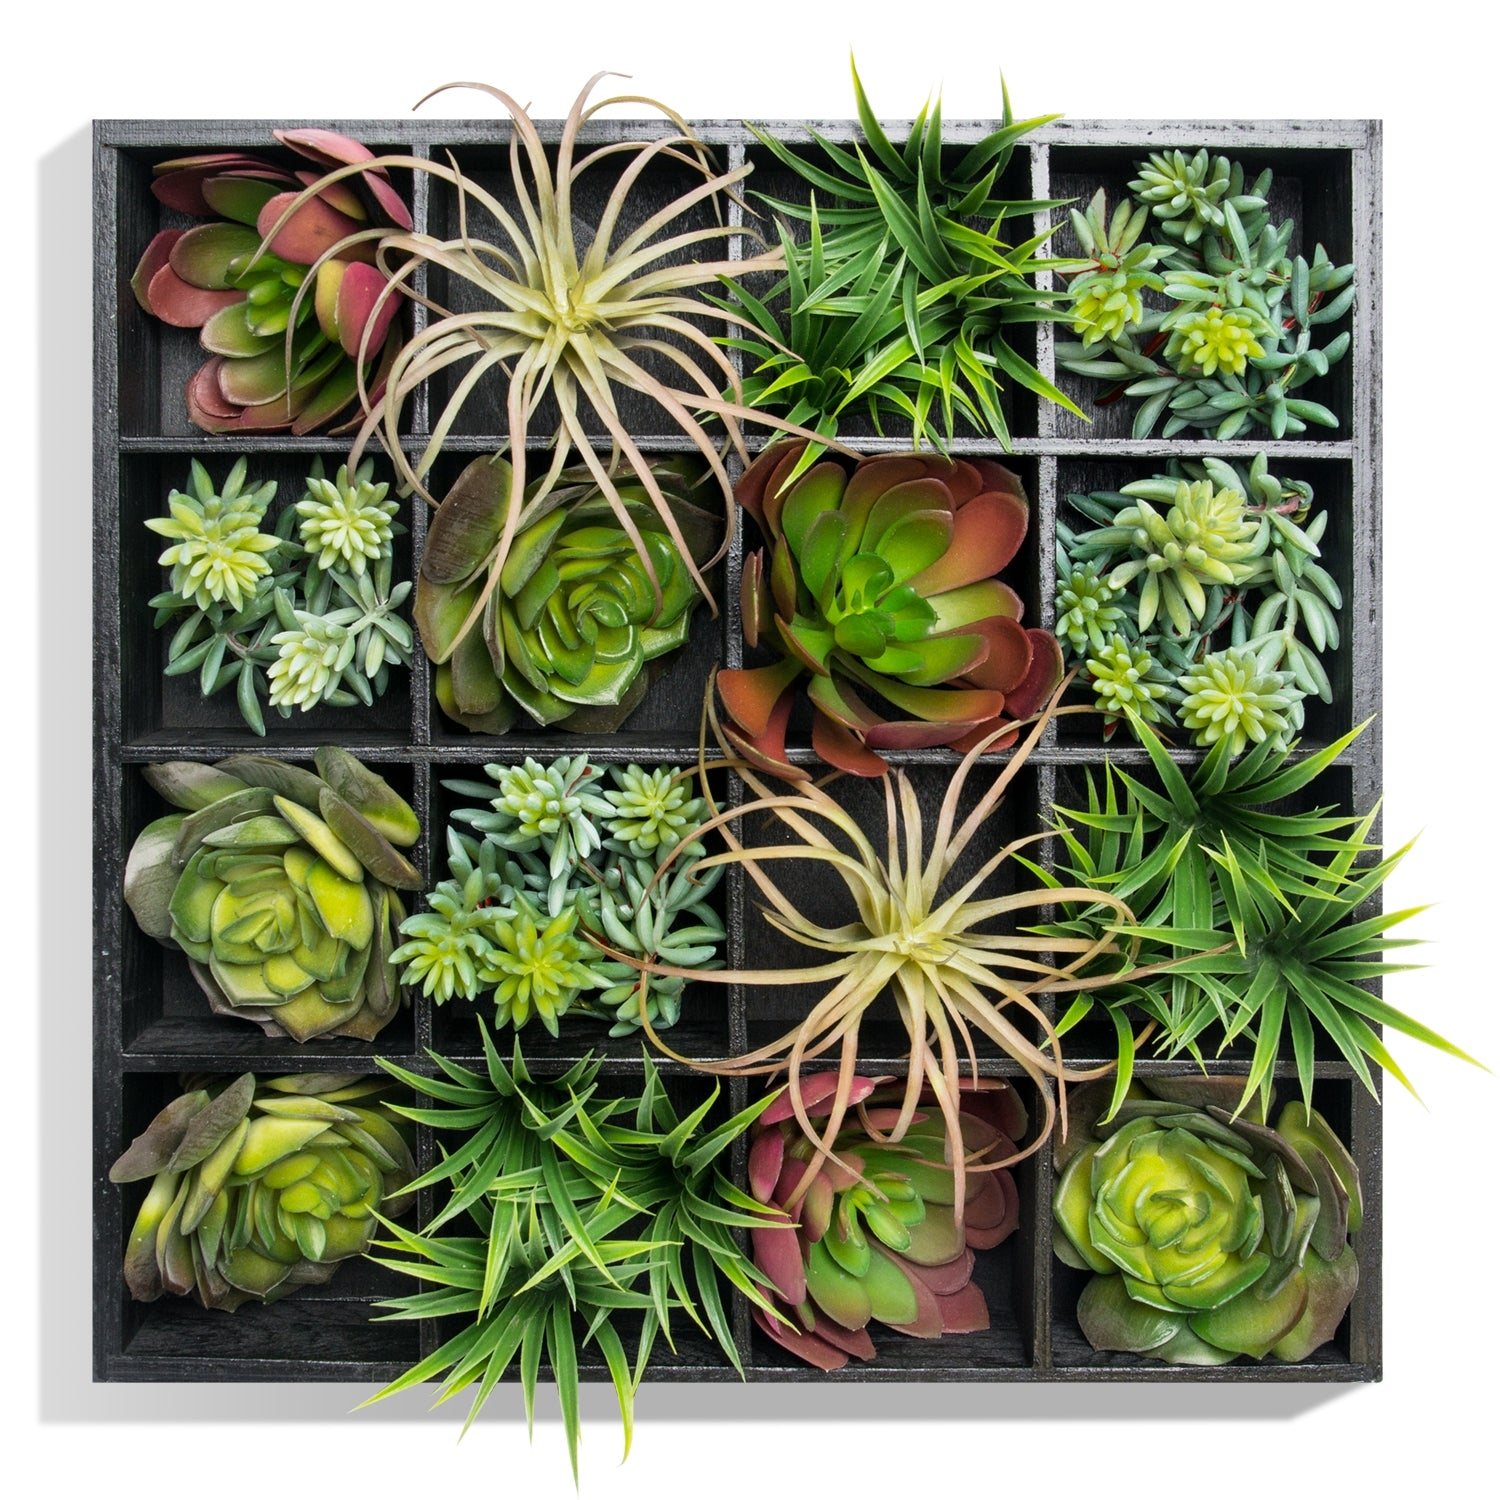 Green Wall, Pixelated Succulent, 16 compartments